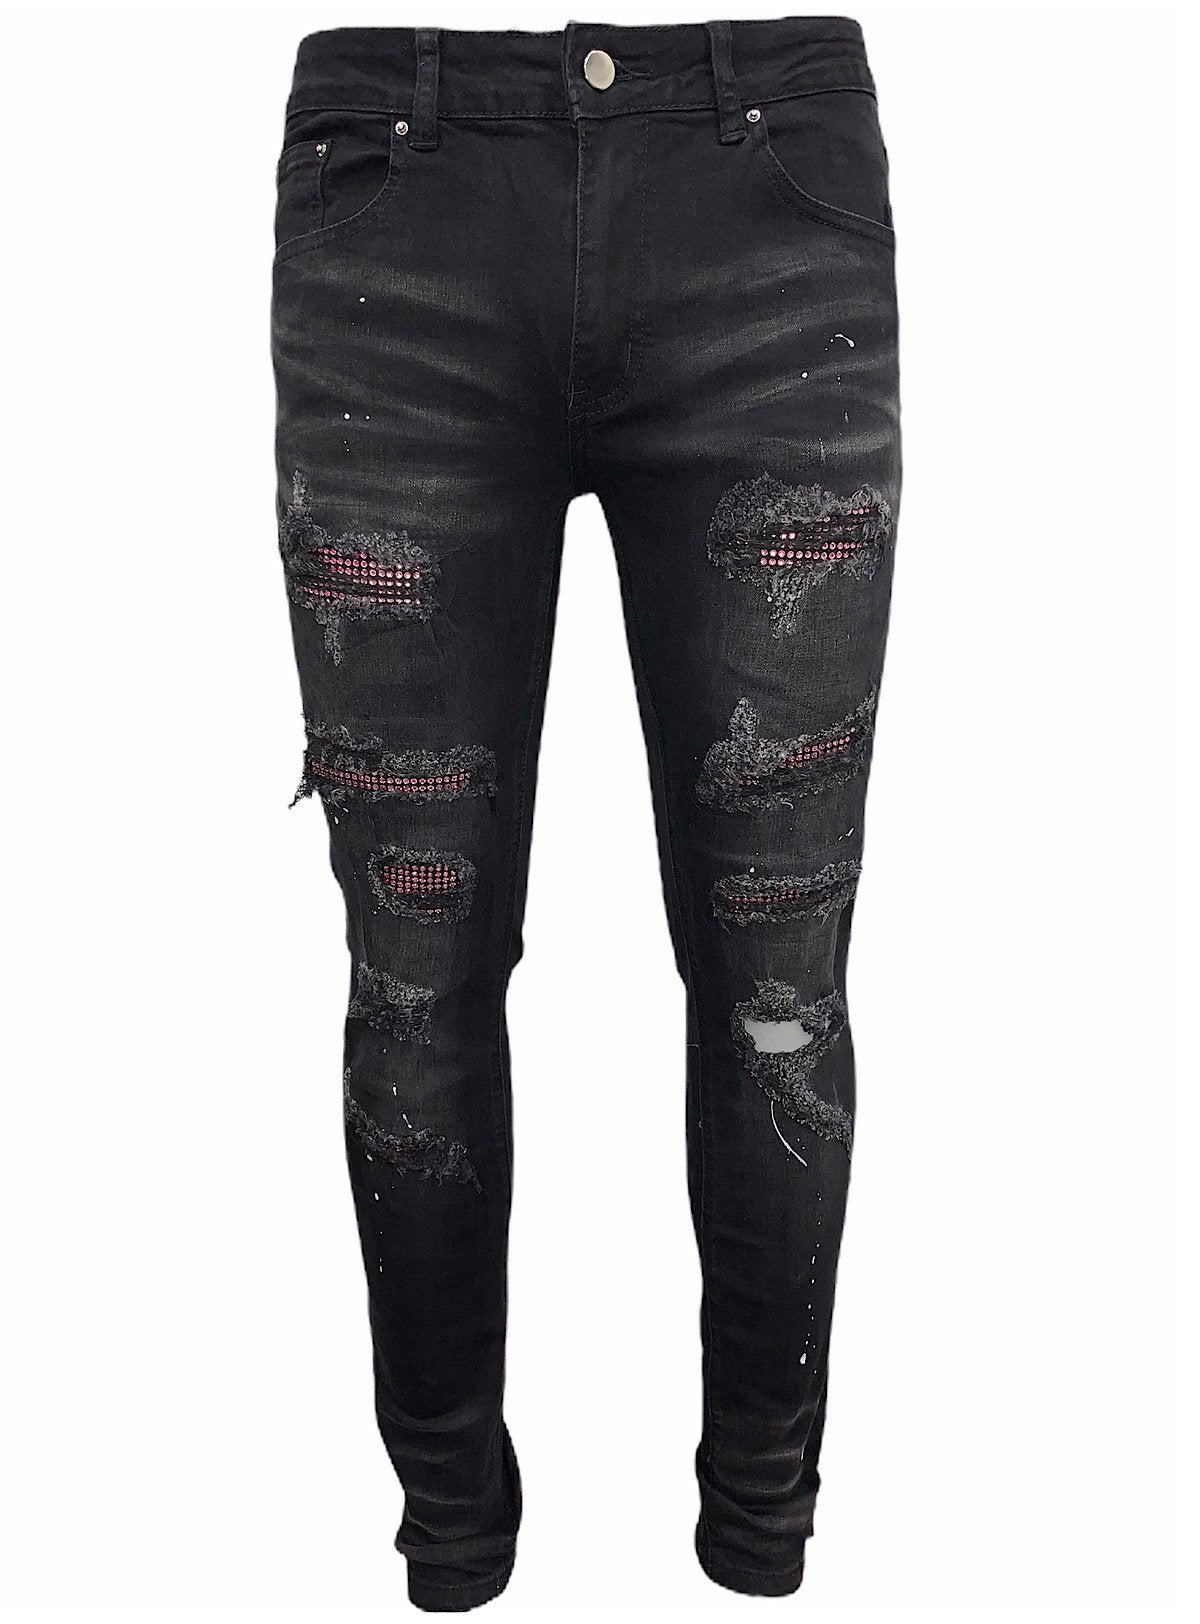 Politics Jeans - Stones - Black With Pink - SM-2005-05